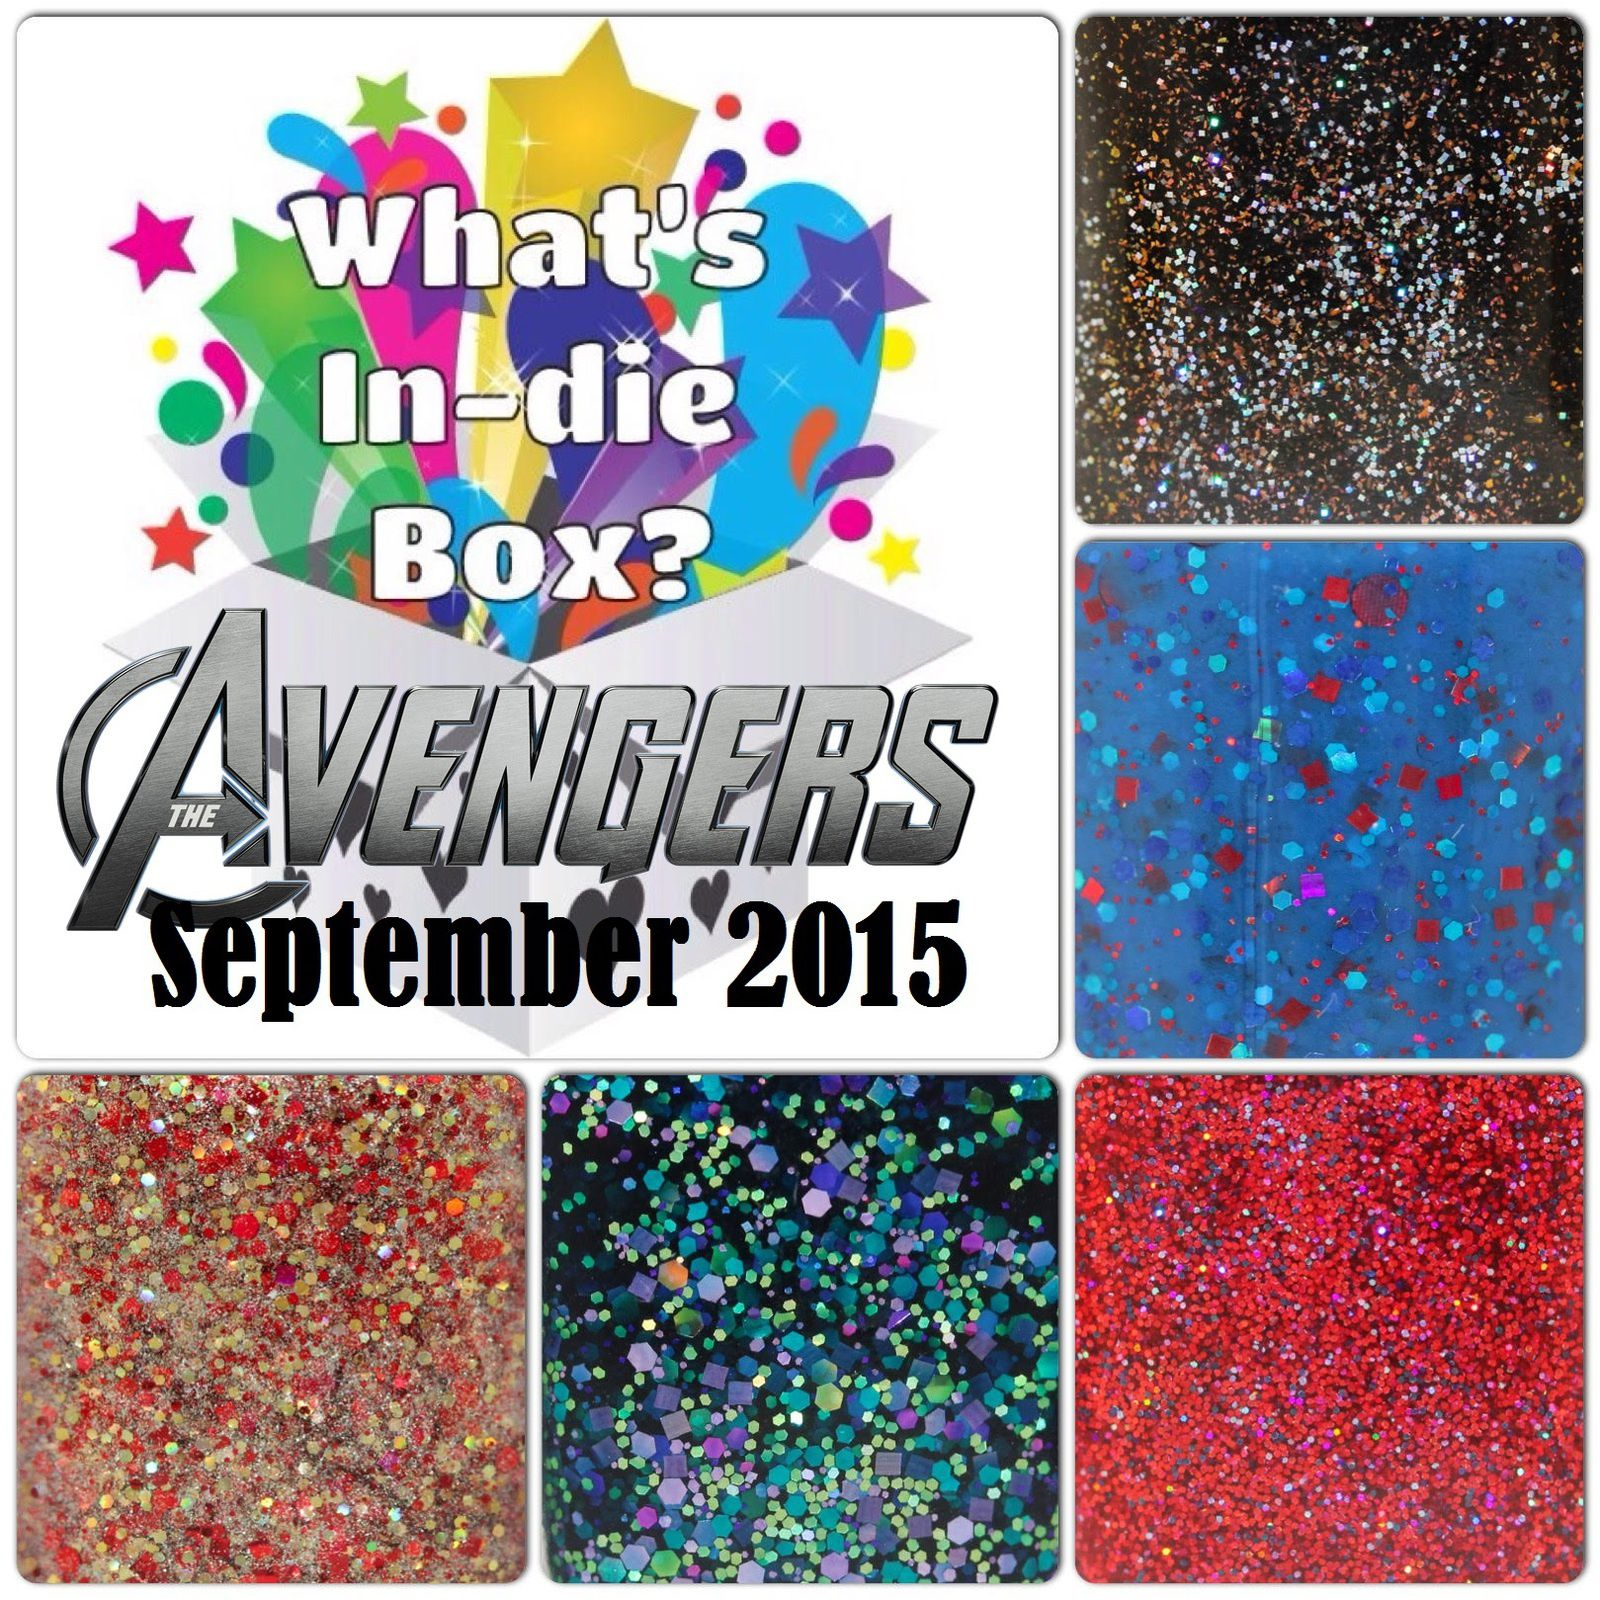 What's Indie Box - September 2015 - The Avengers